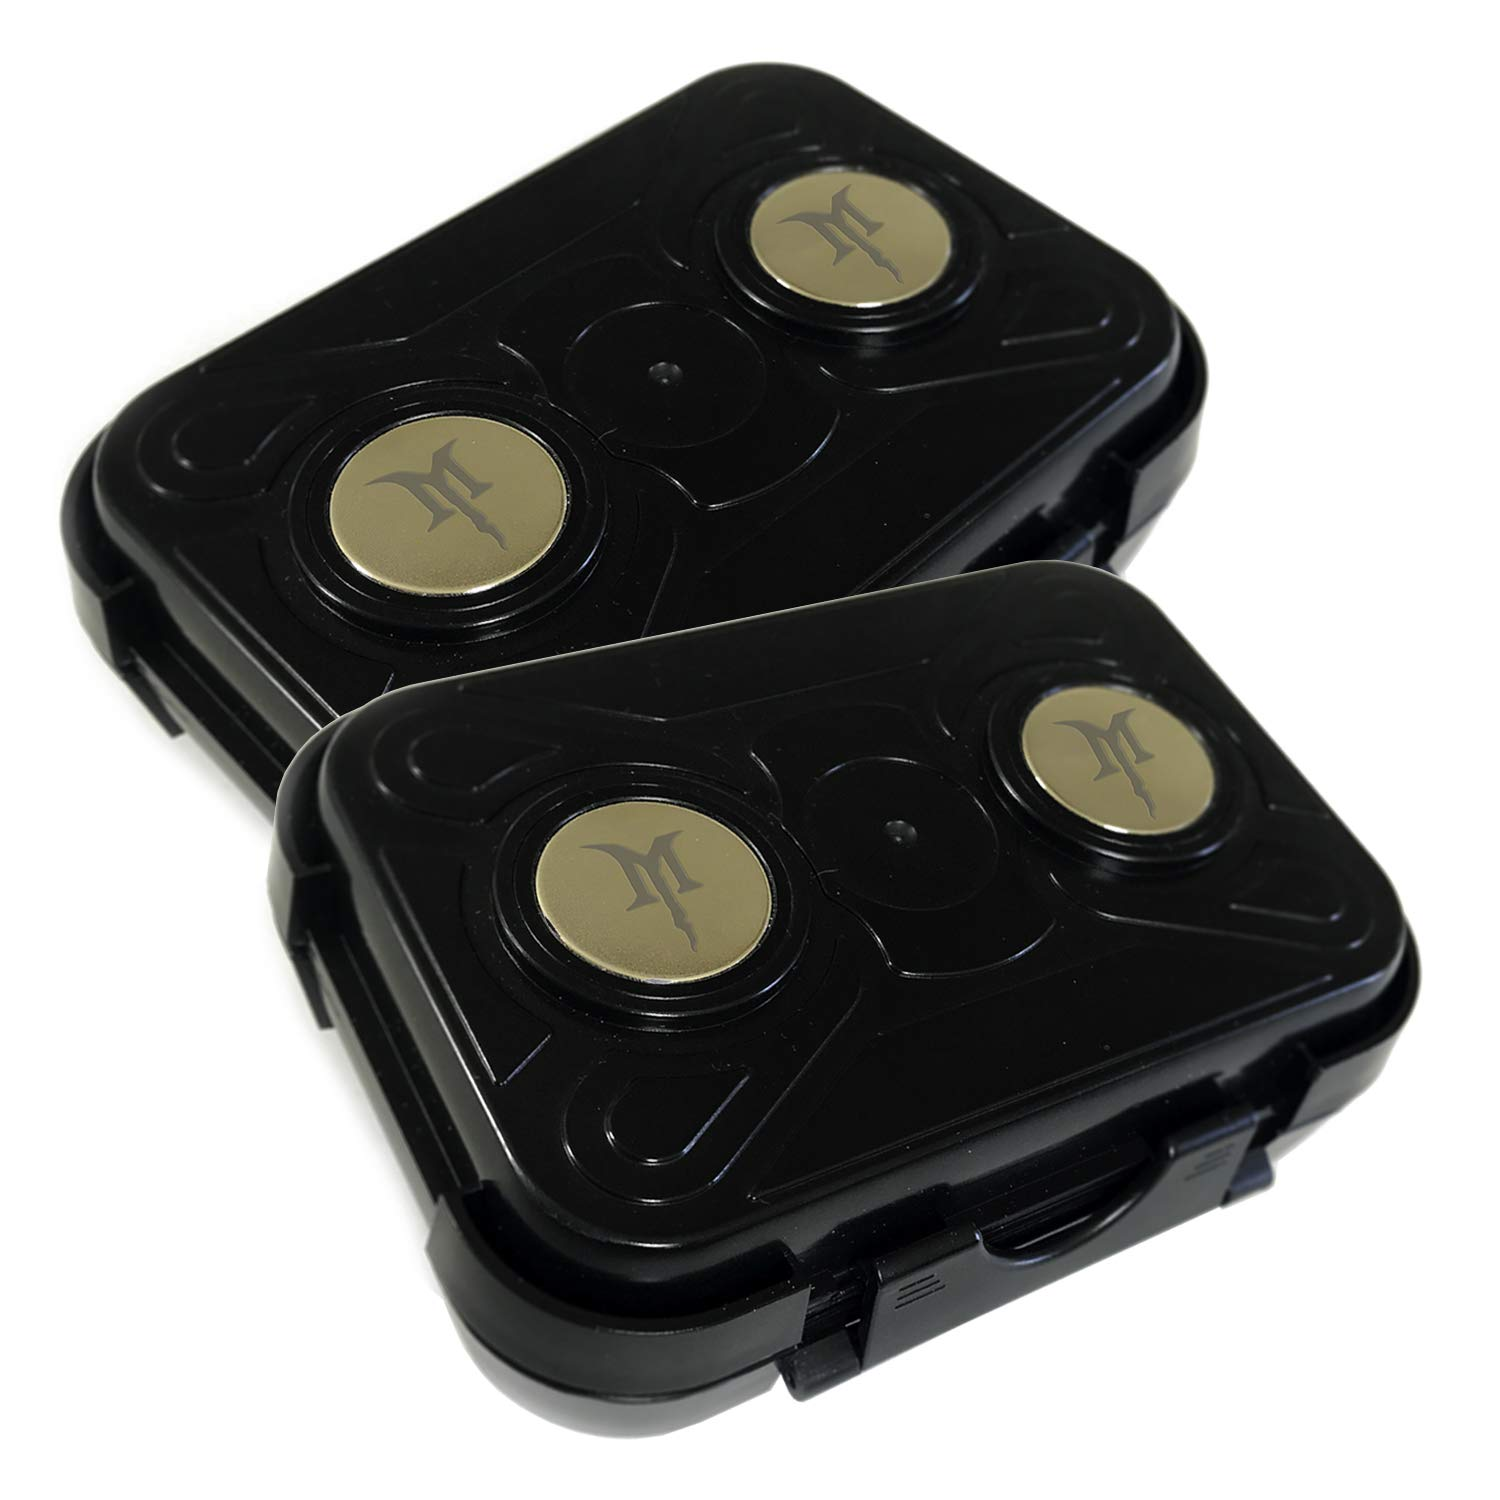 Monster Magnetics MiniMag Plus [2 PACK] Larger Sized Magnetic Stash Box - All-Weather Hide A Key, Locker Box, Magnet-Mount Geocaching Container, Under-Car GPS Tracker Holder - Hide Your Swag Anywhere!